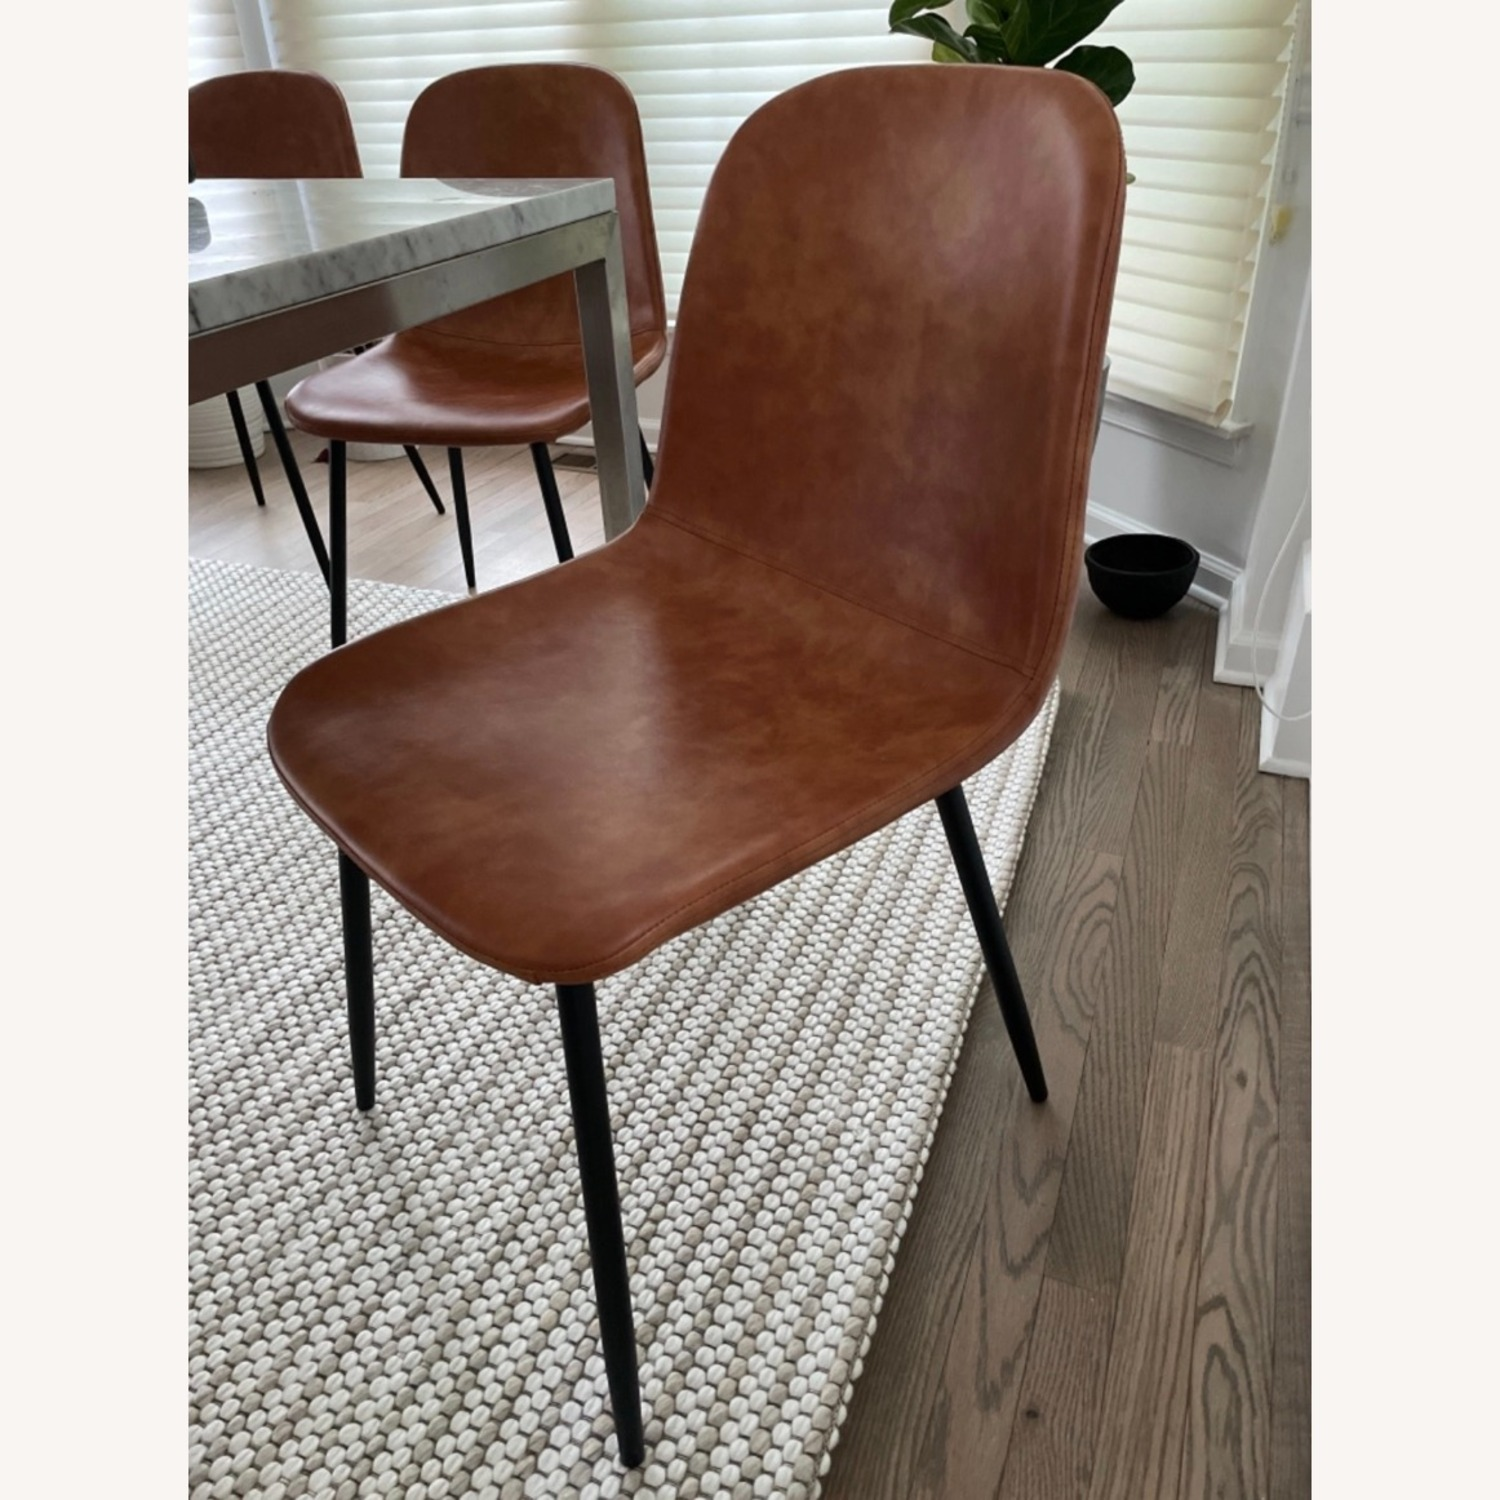 Set of 6 Slope Dining Chairs Faux Leather Brown - image-1